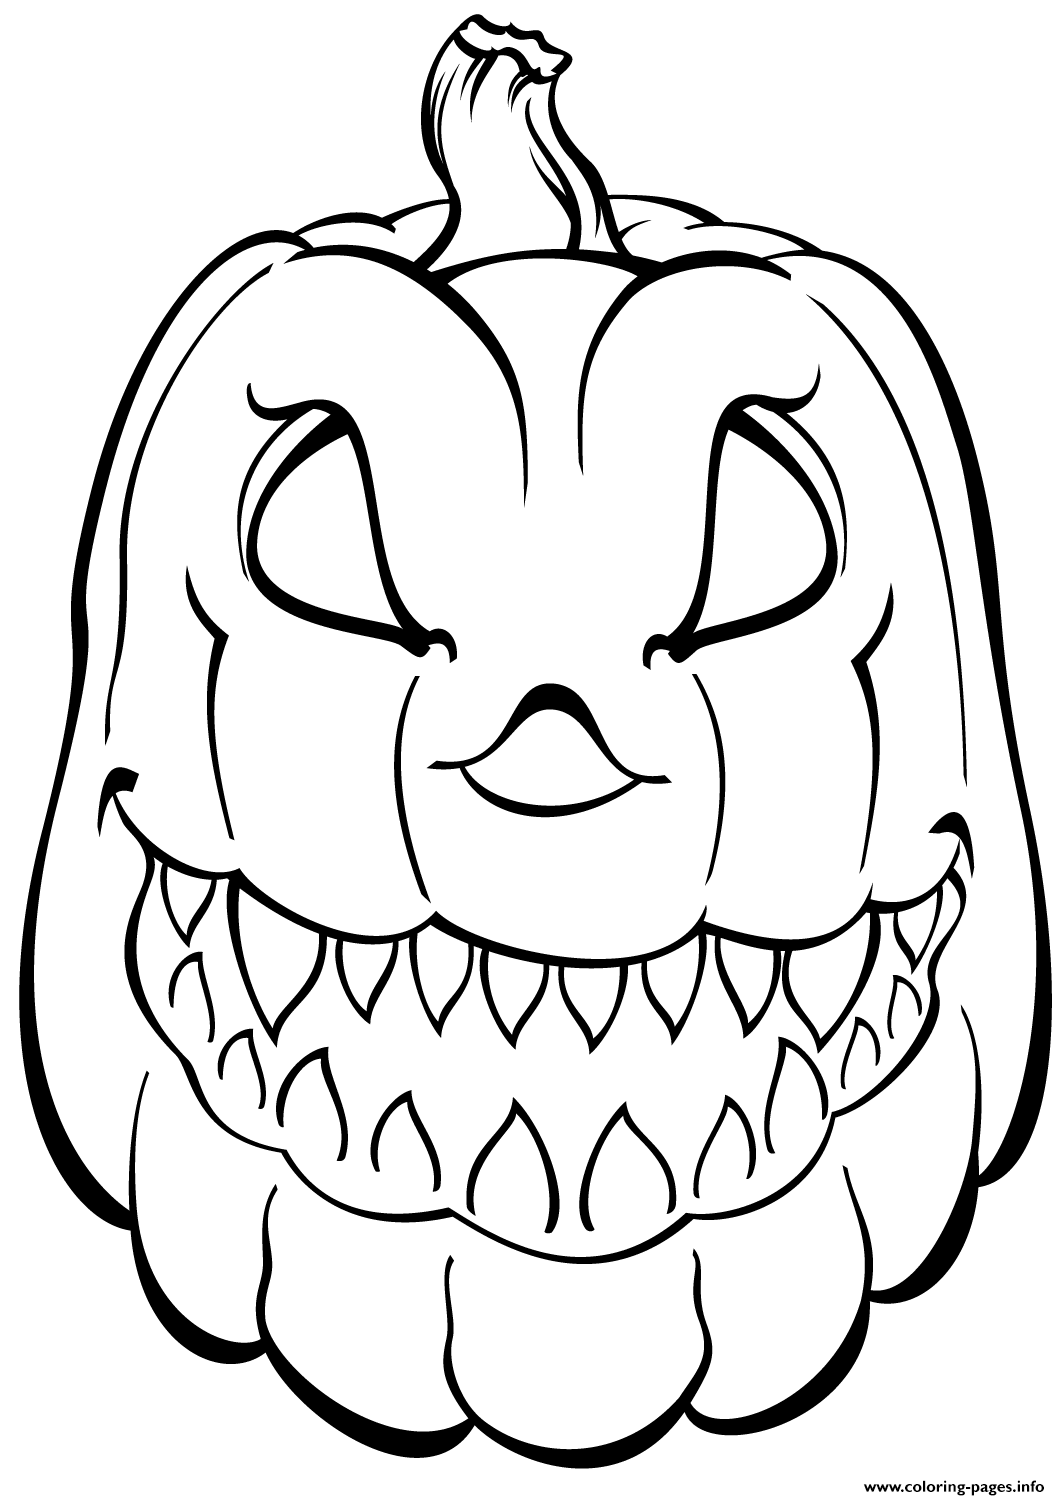 Scary Pumpkin Halloween Coloring Pages Printable